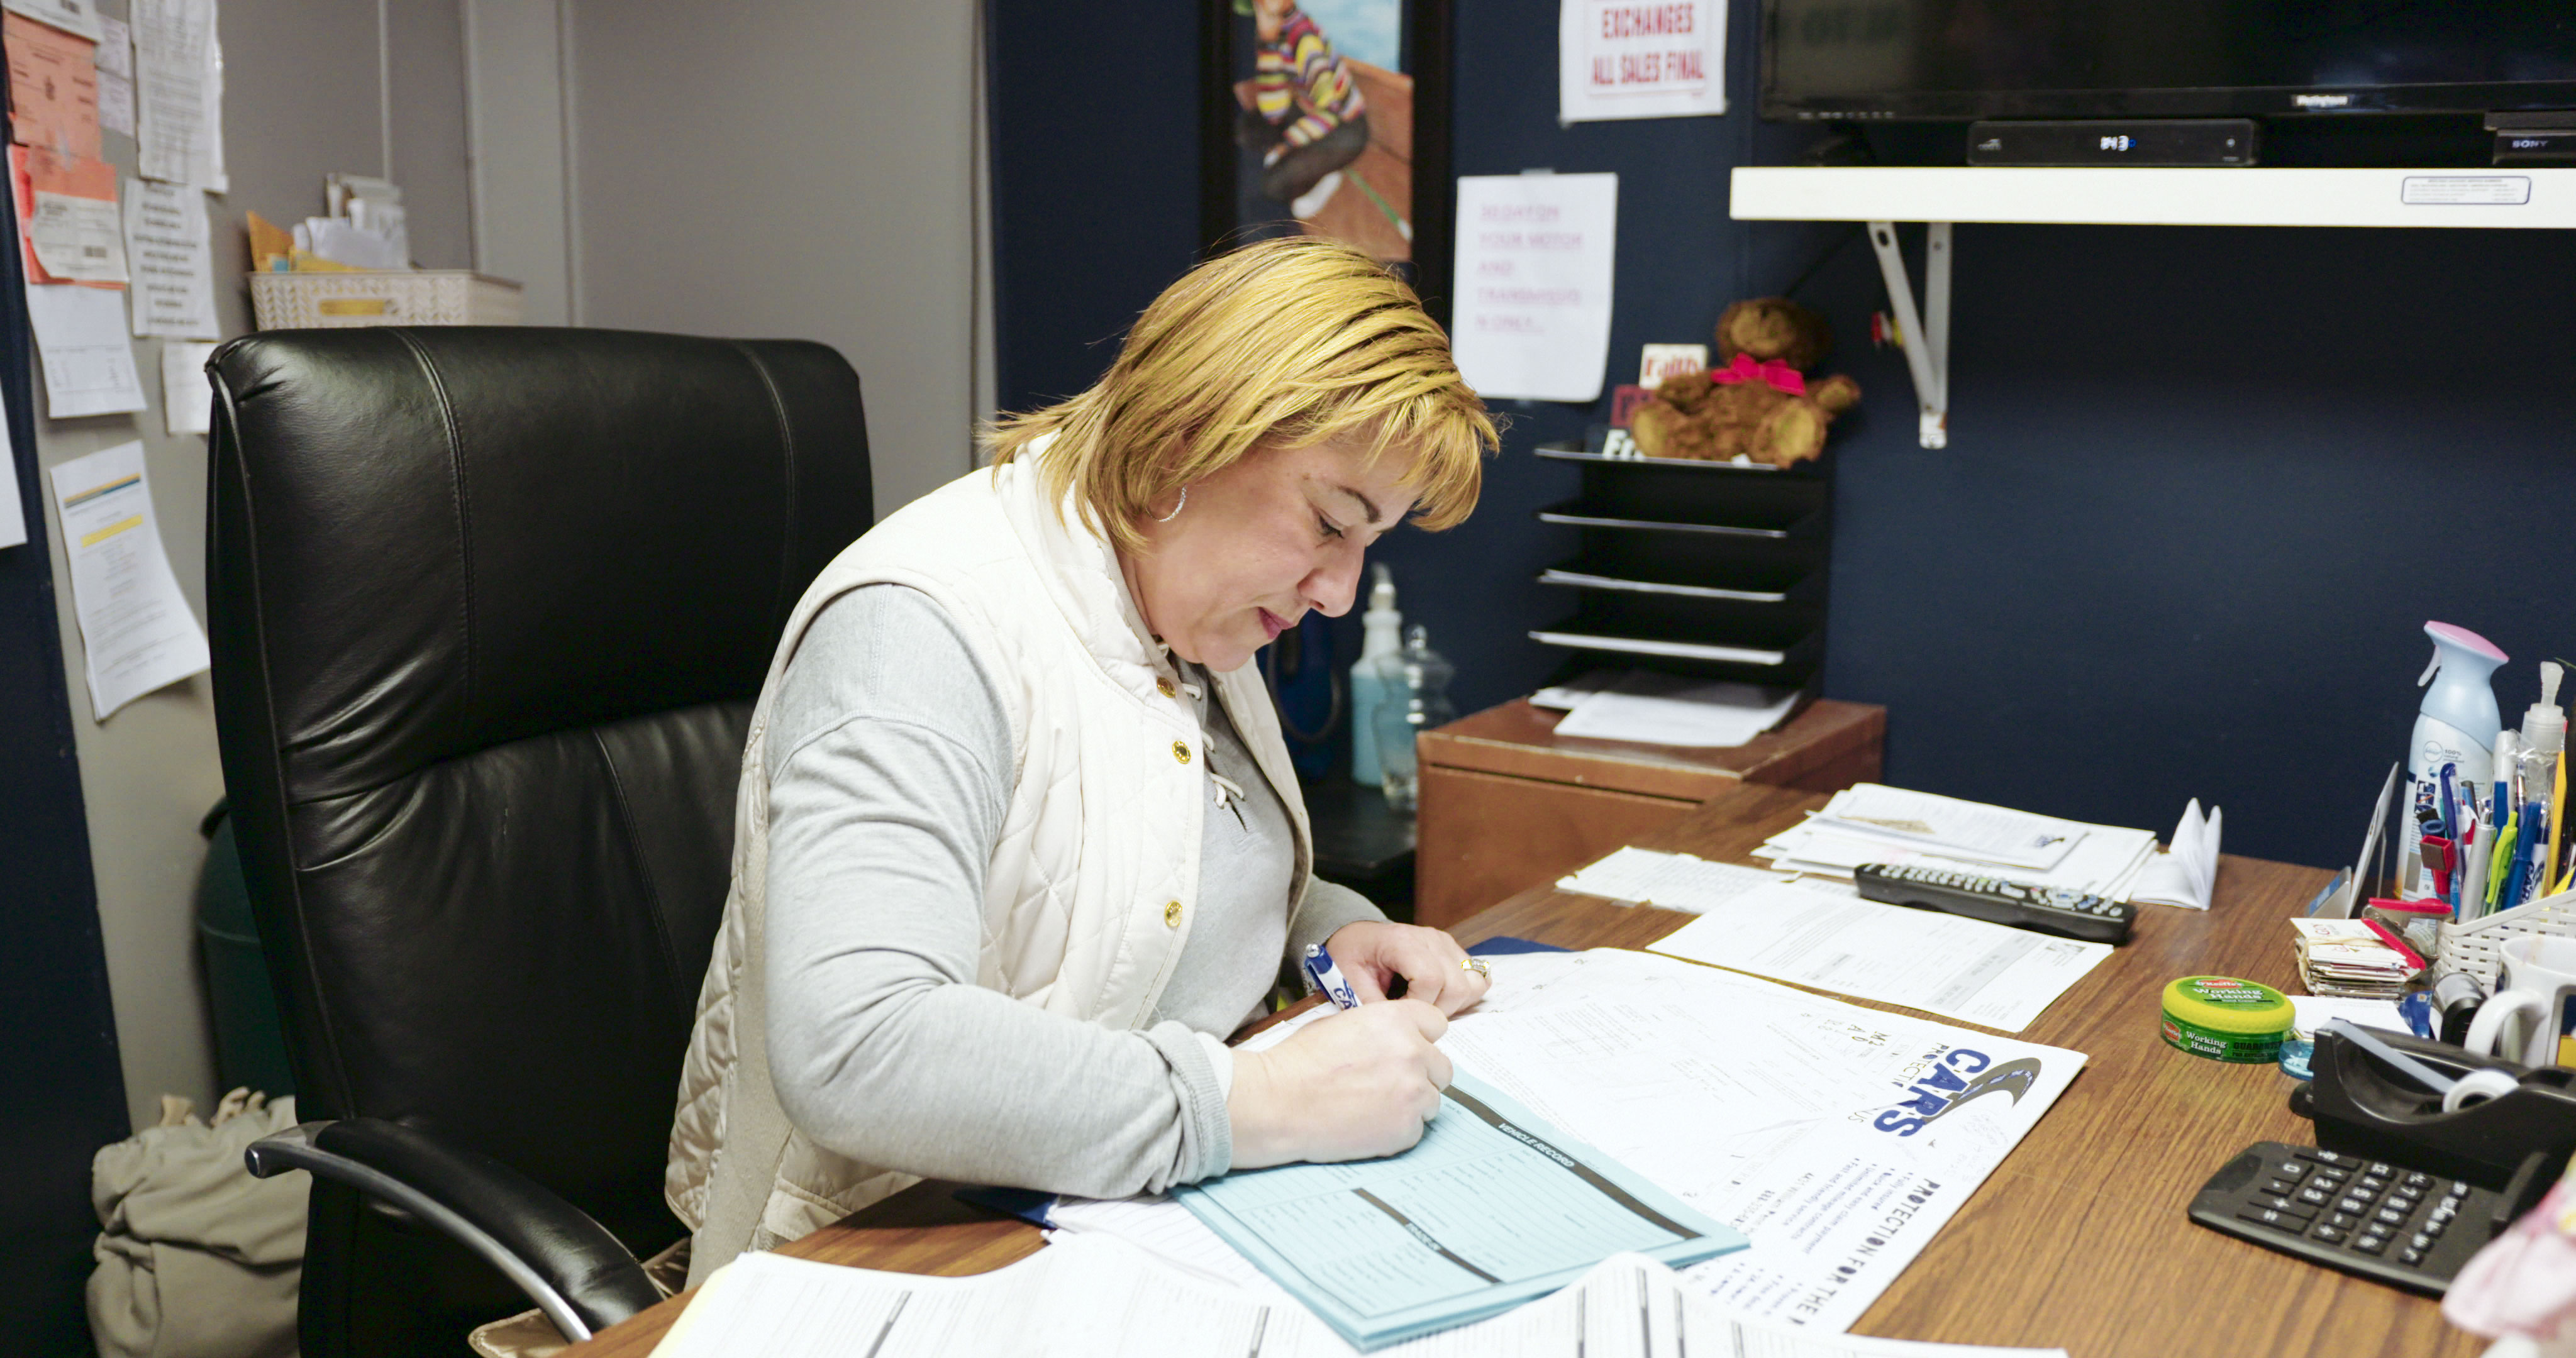 Woman working on paperwork at a desk